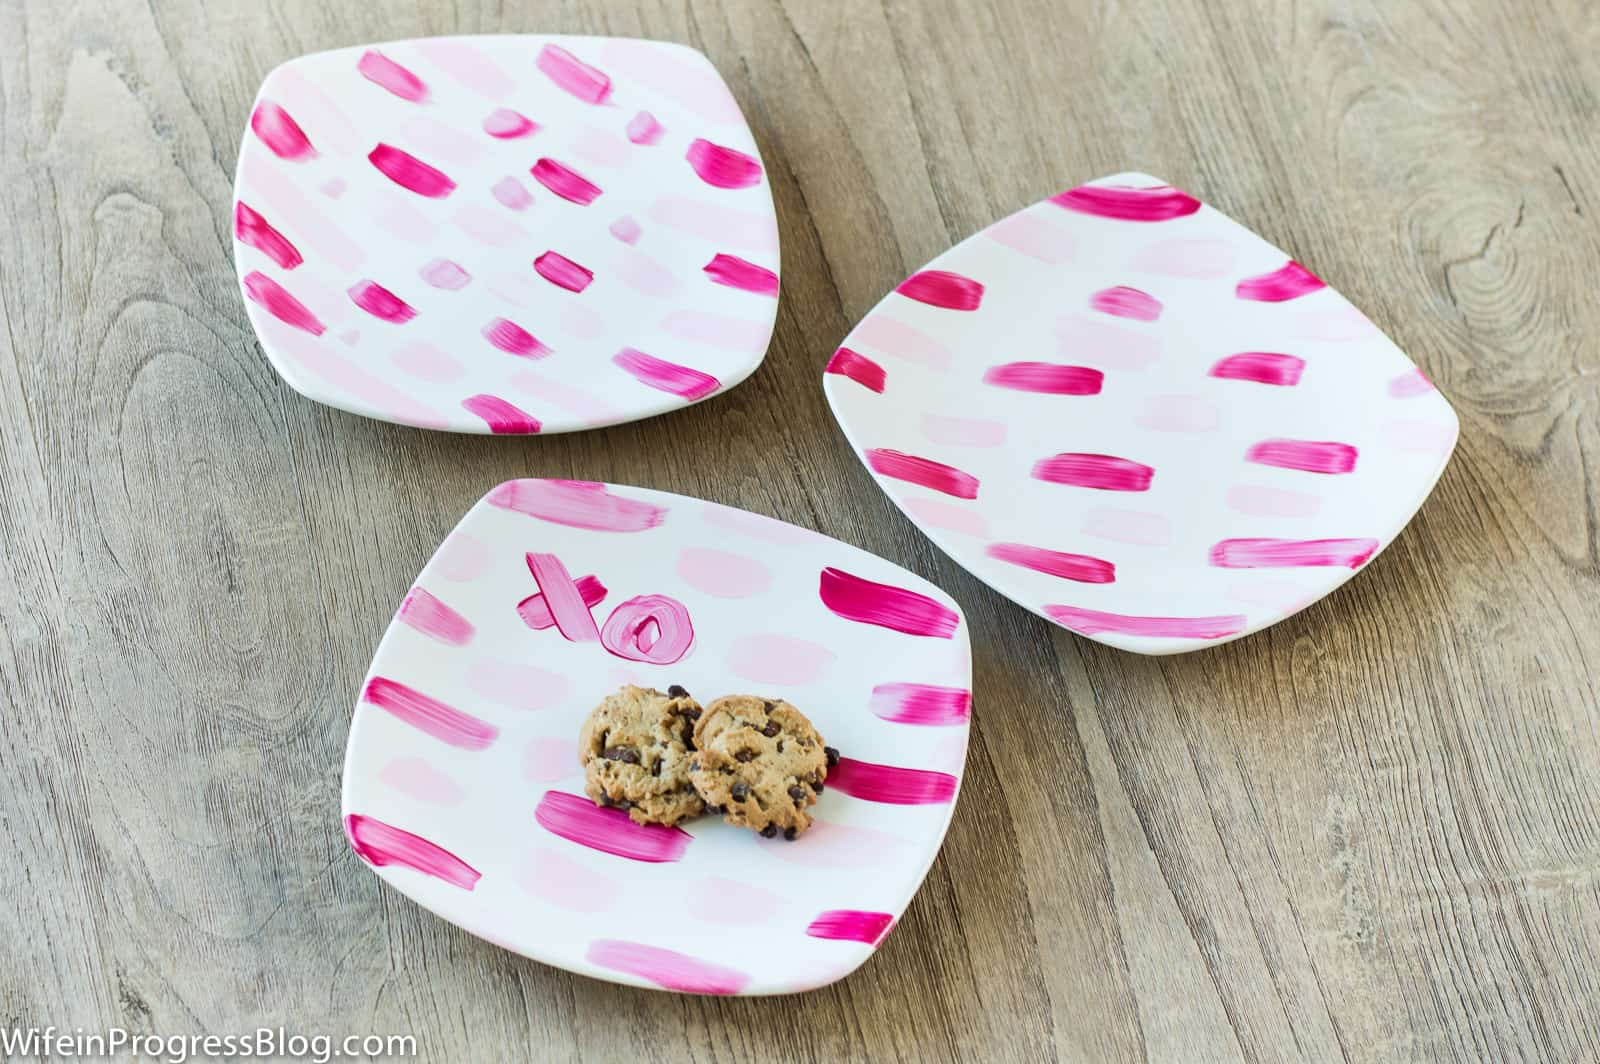 These painted Valentine's plates are perfect for serving sweet goodies to your loved ones